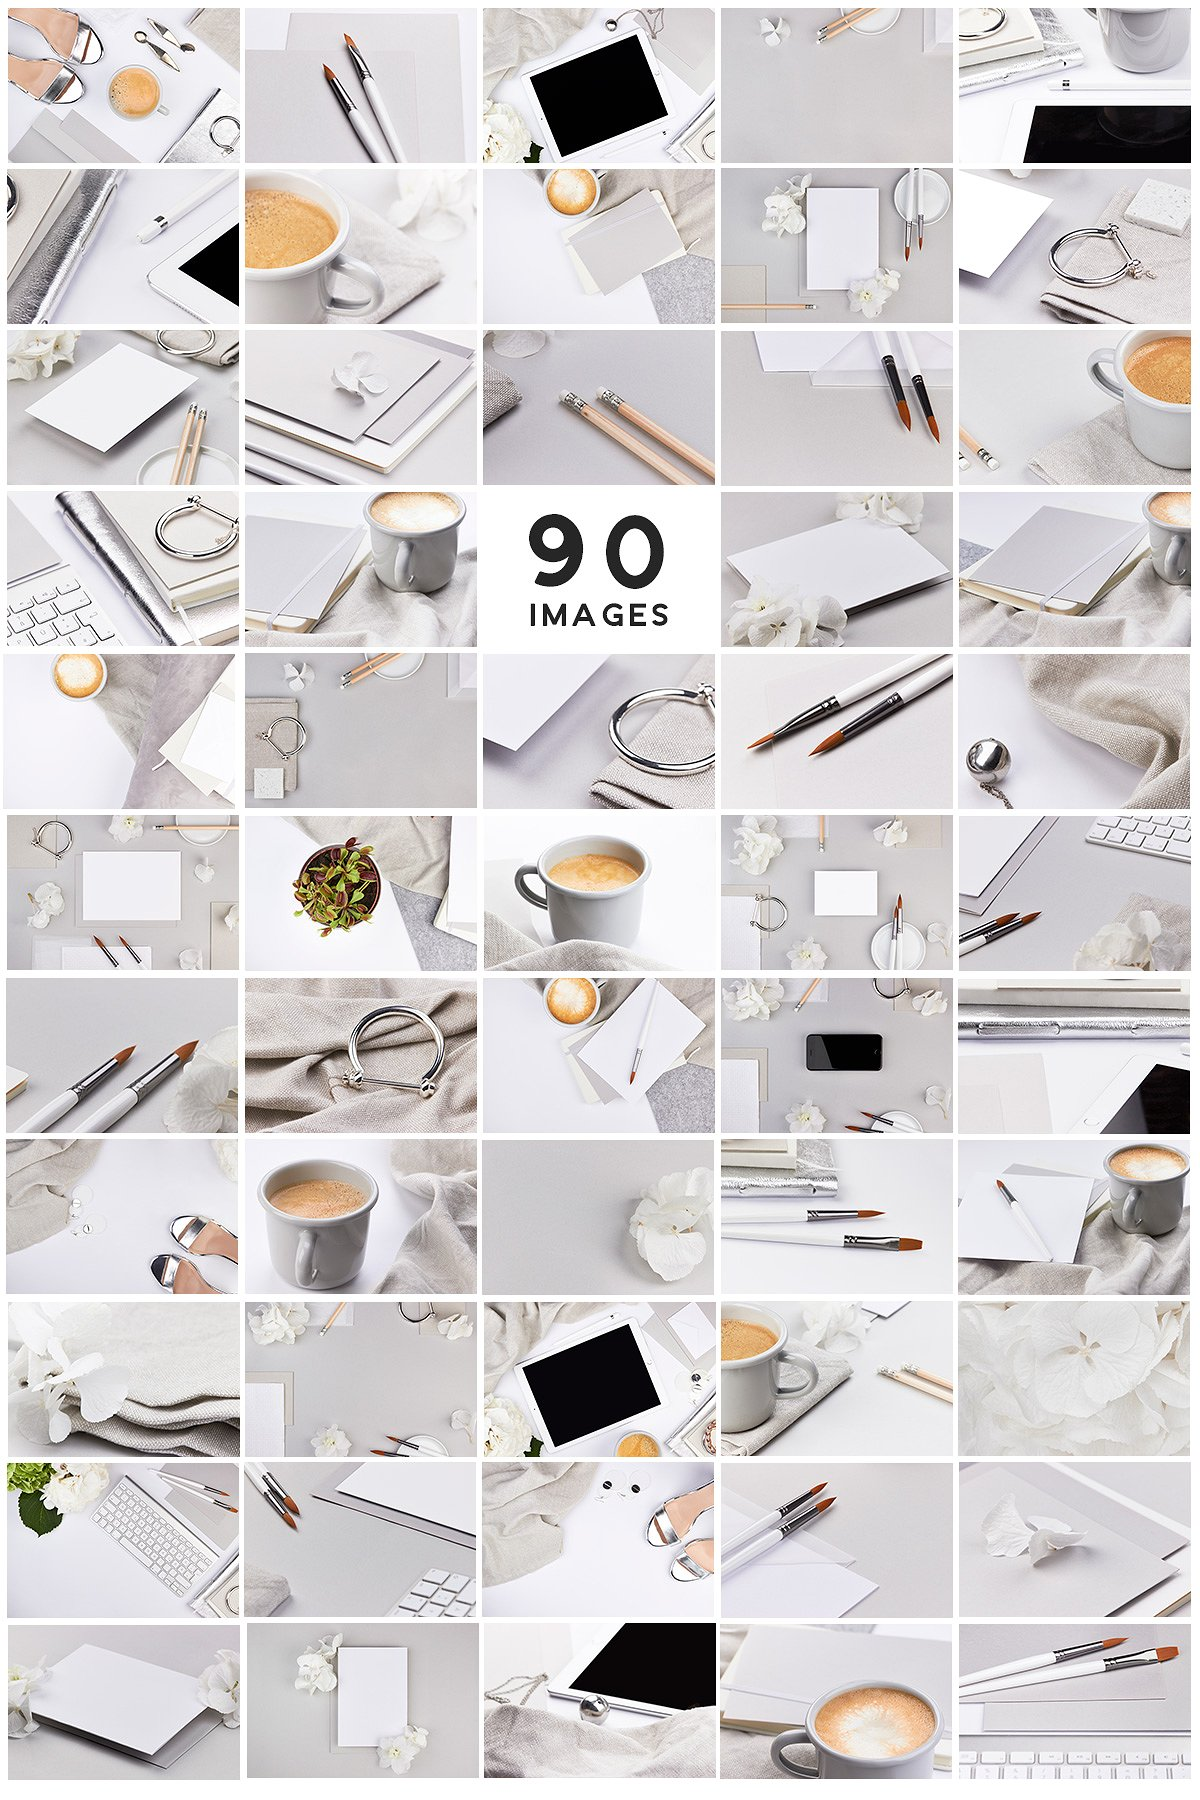 03-bundle-stock-image-mockup-collection-social-media-fashion-blogger-light-grey-sophisticated-white-silver-